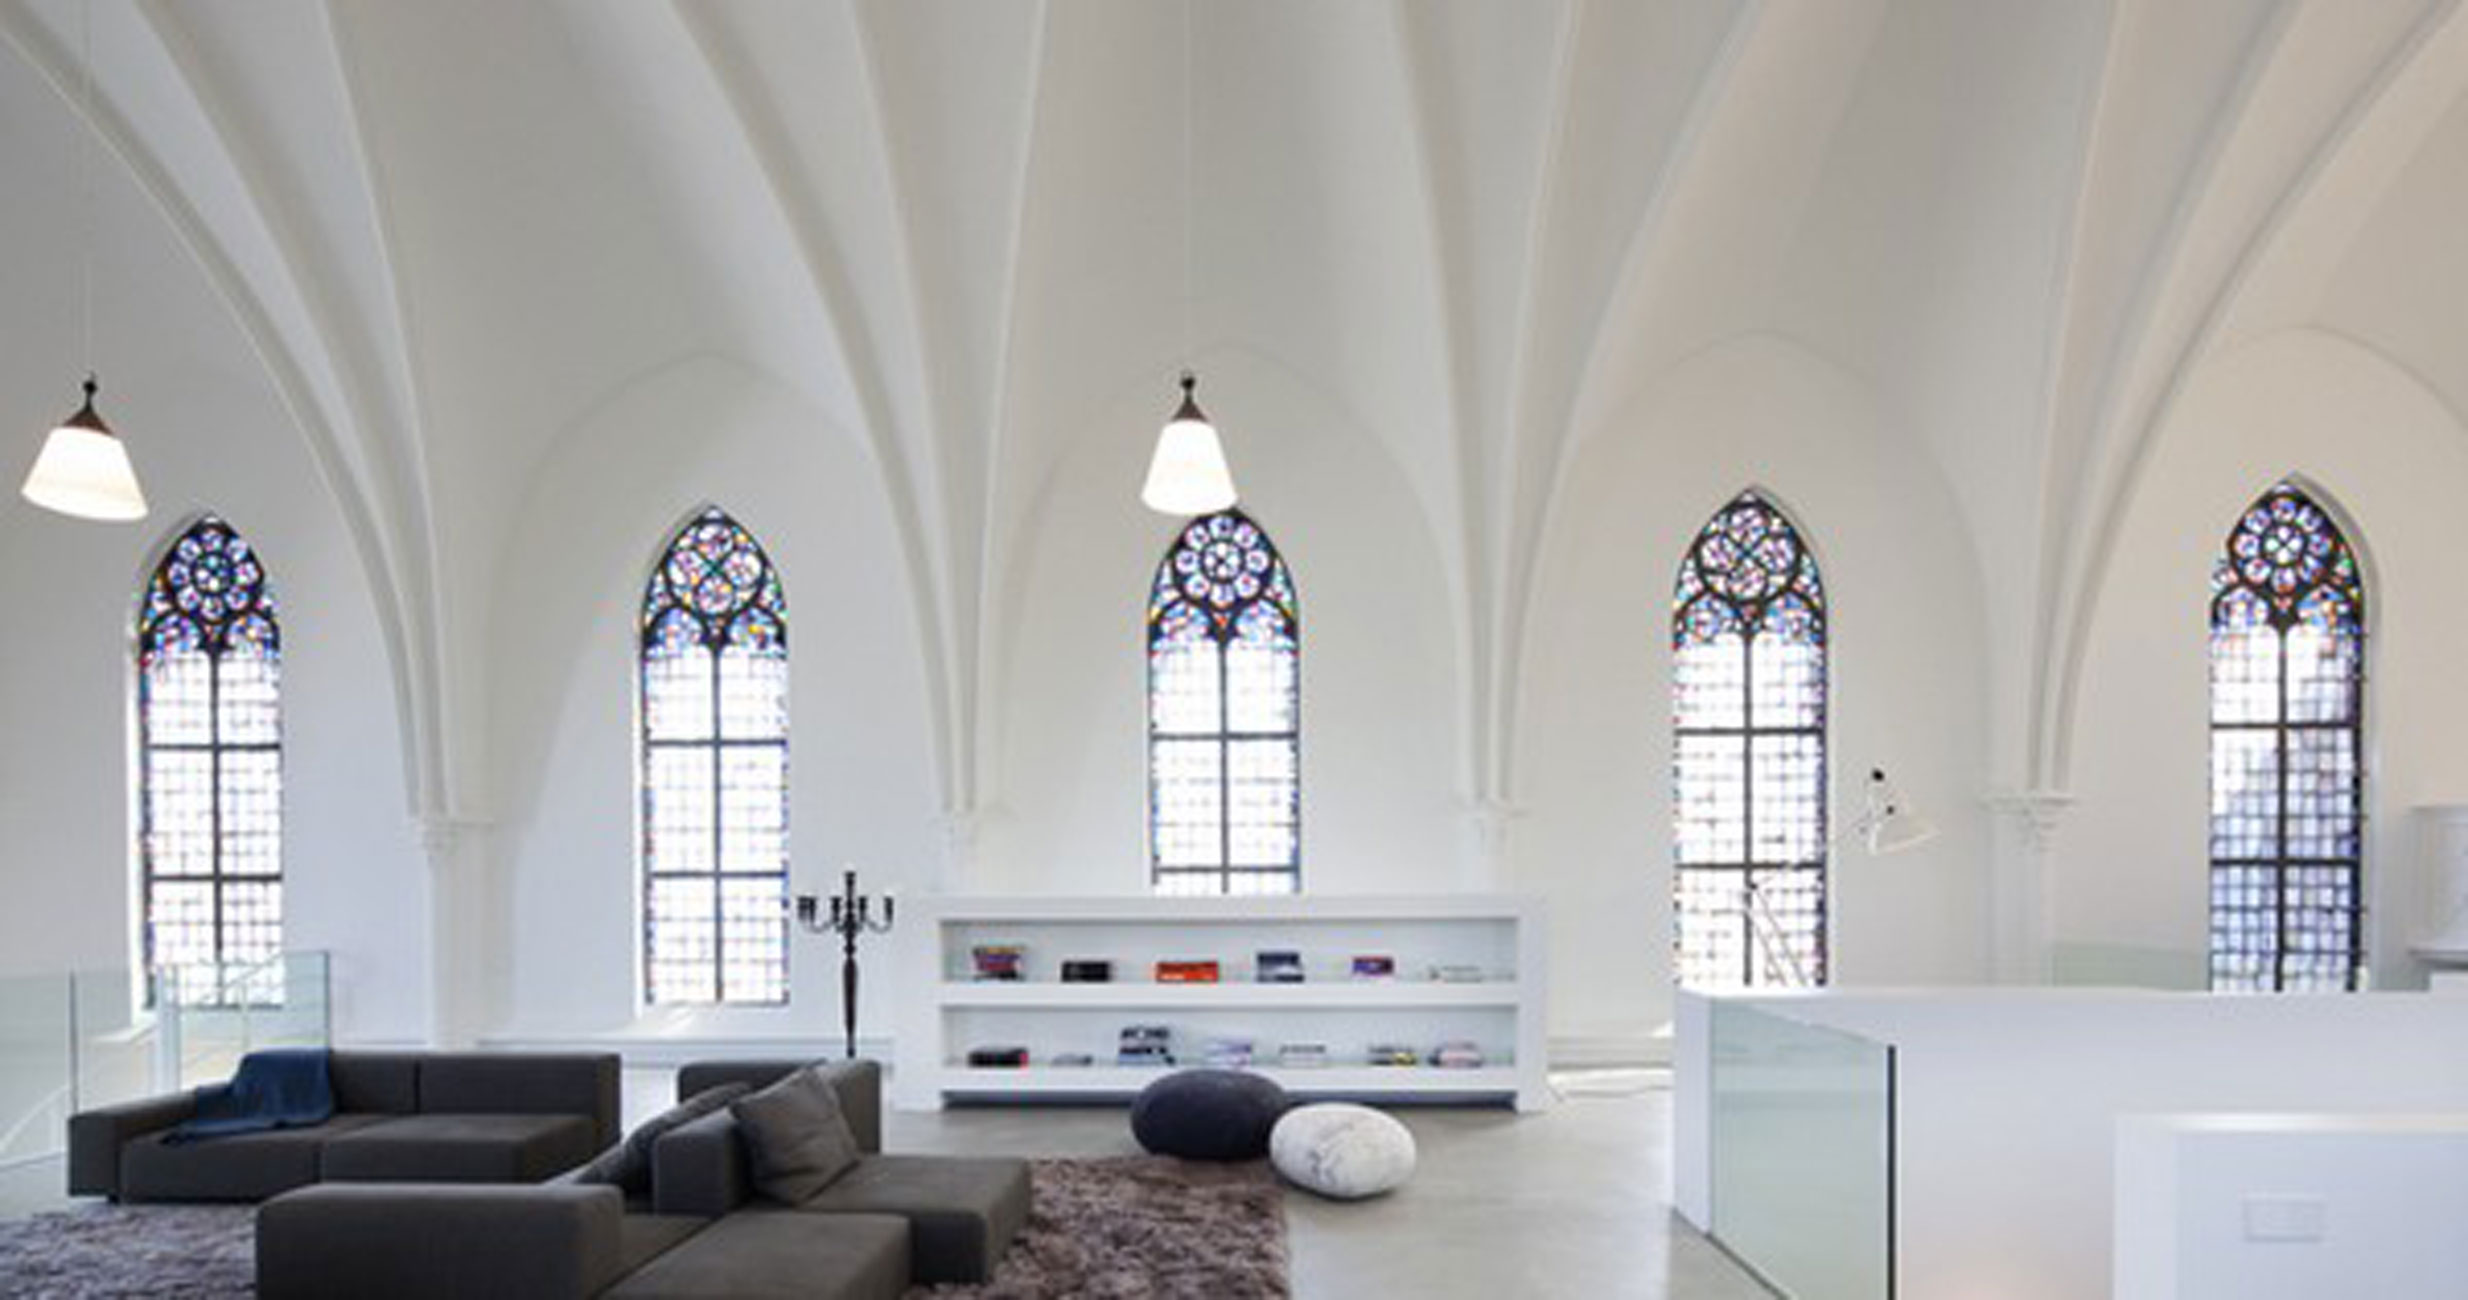 Gothic Church Turned into White Contemporary Home in 2009 » Viahouse.